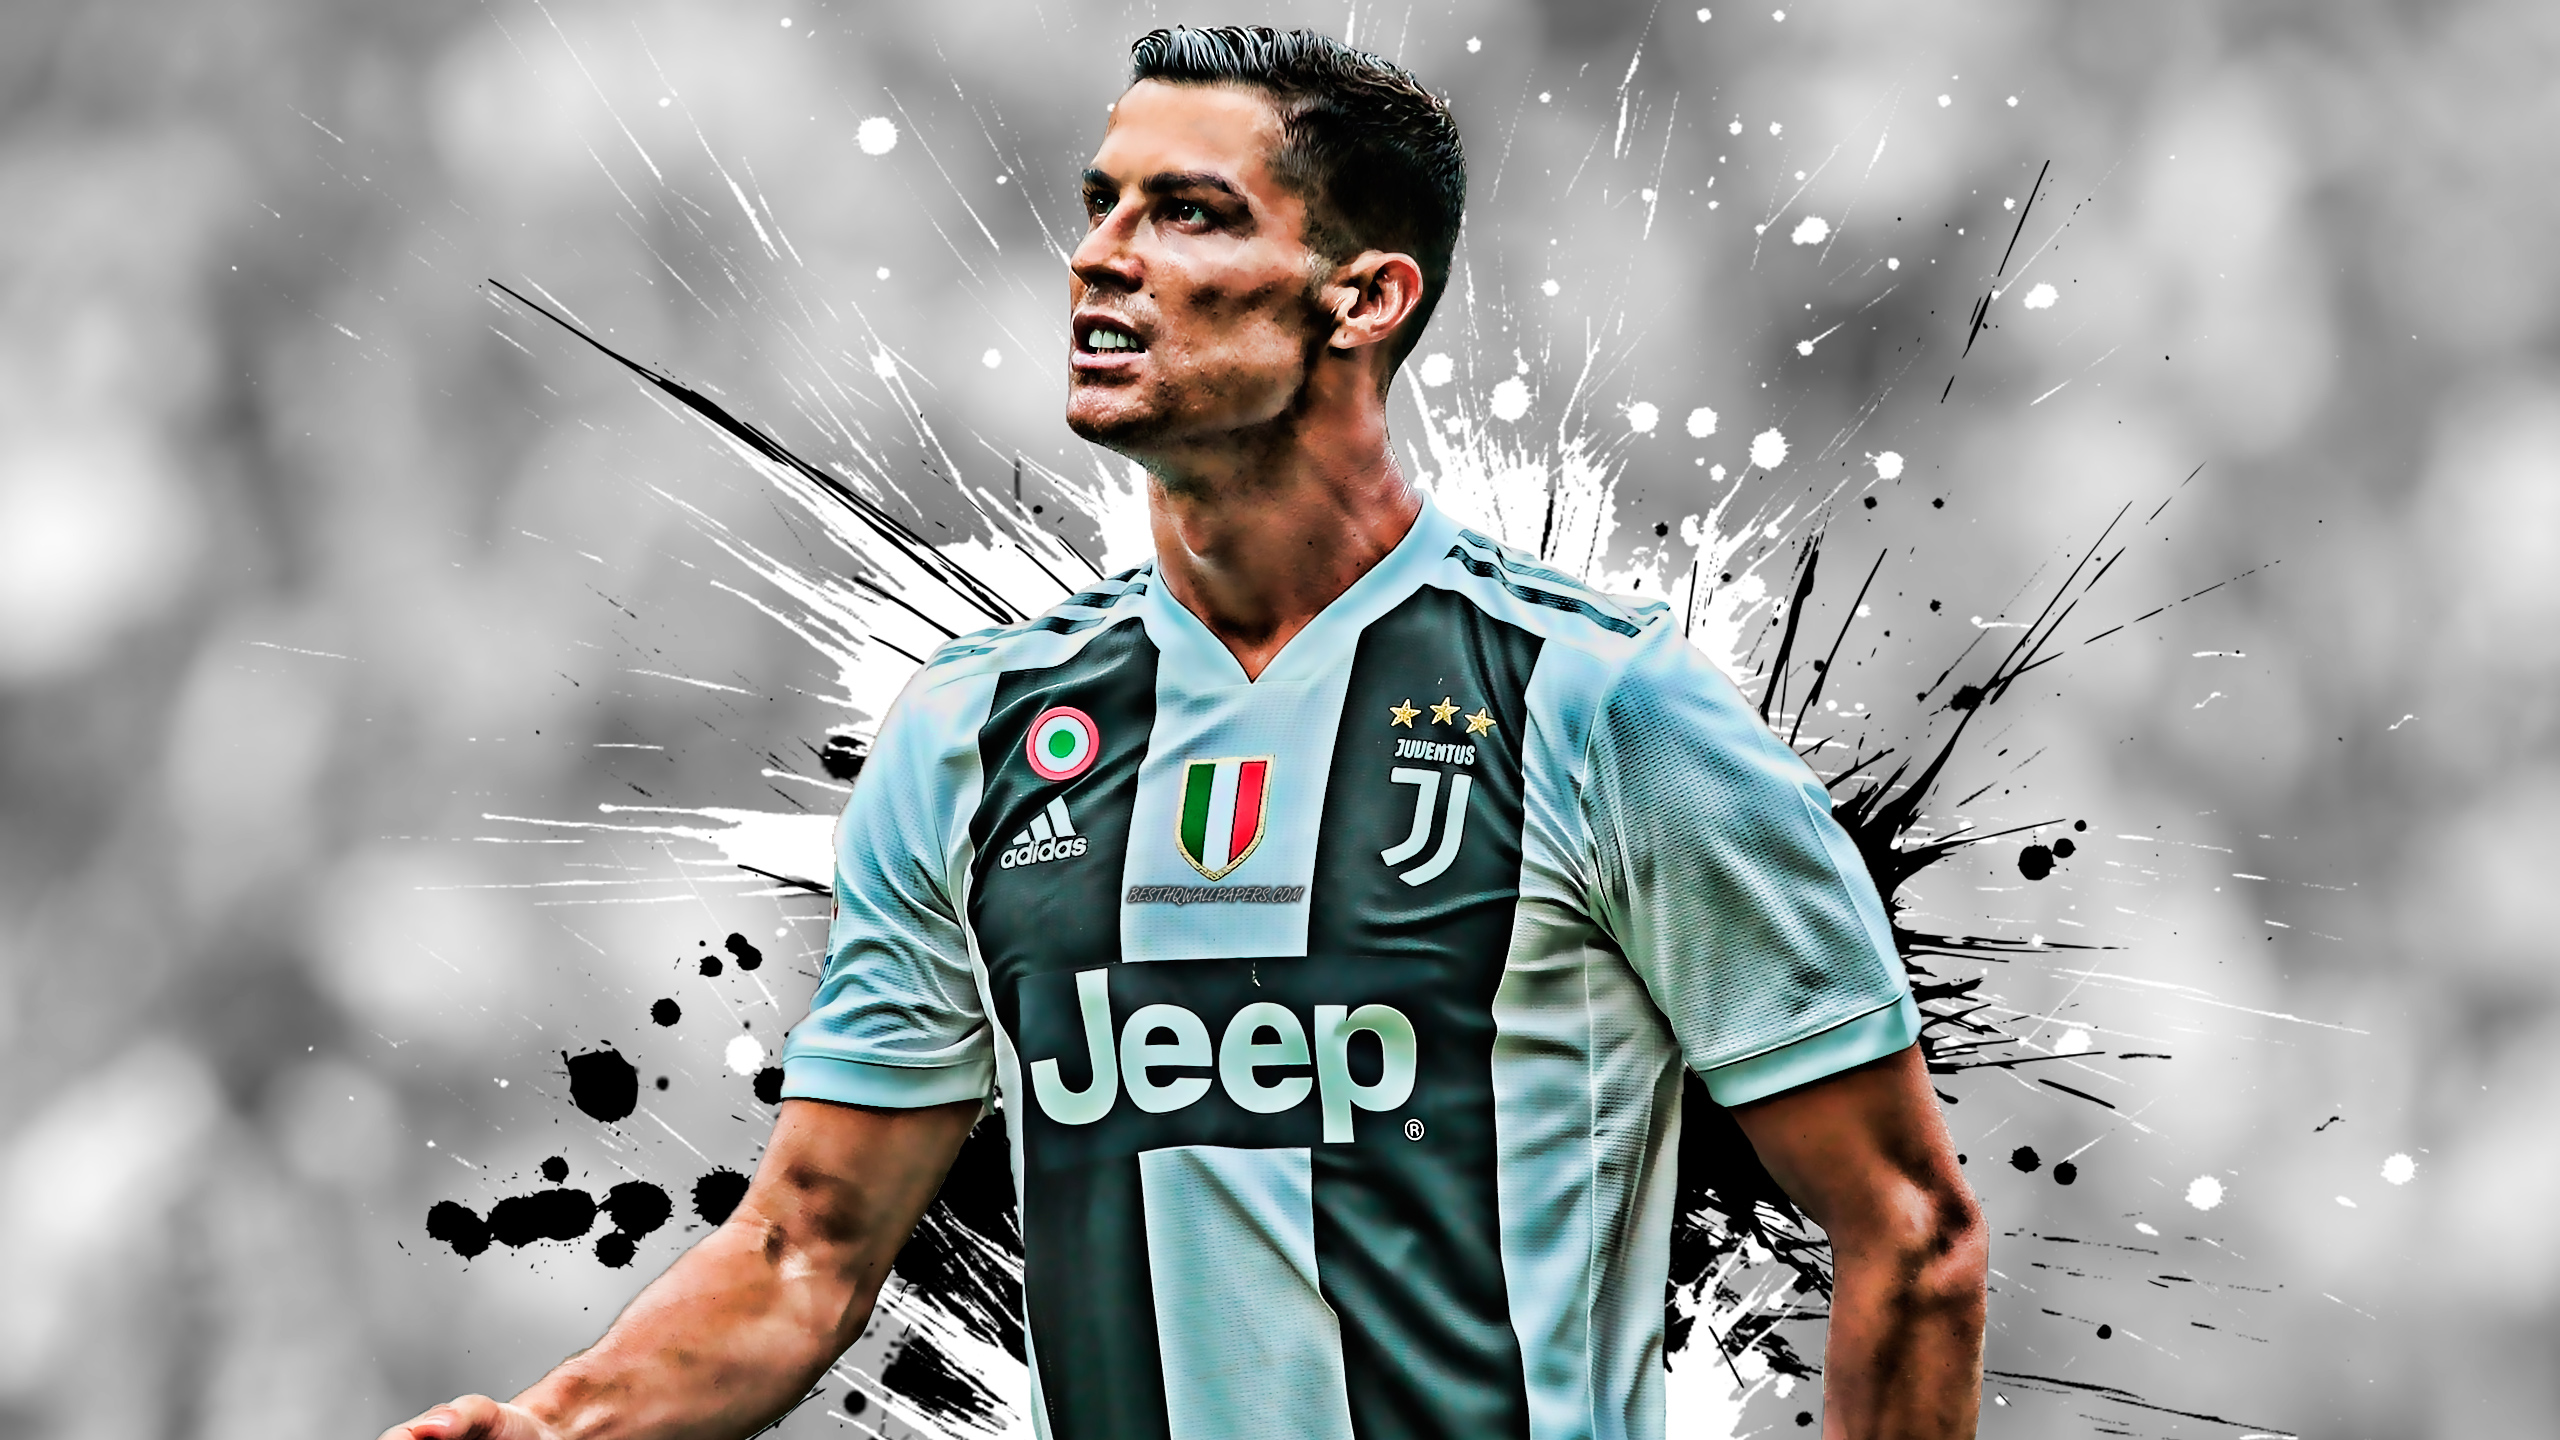 Cristiano Ronaldo Wallpapers Hd Wallpapers